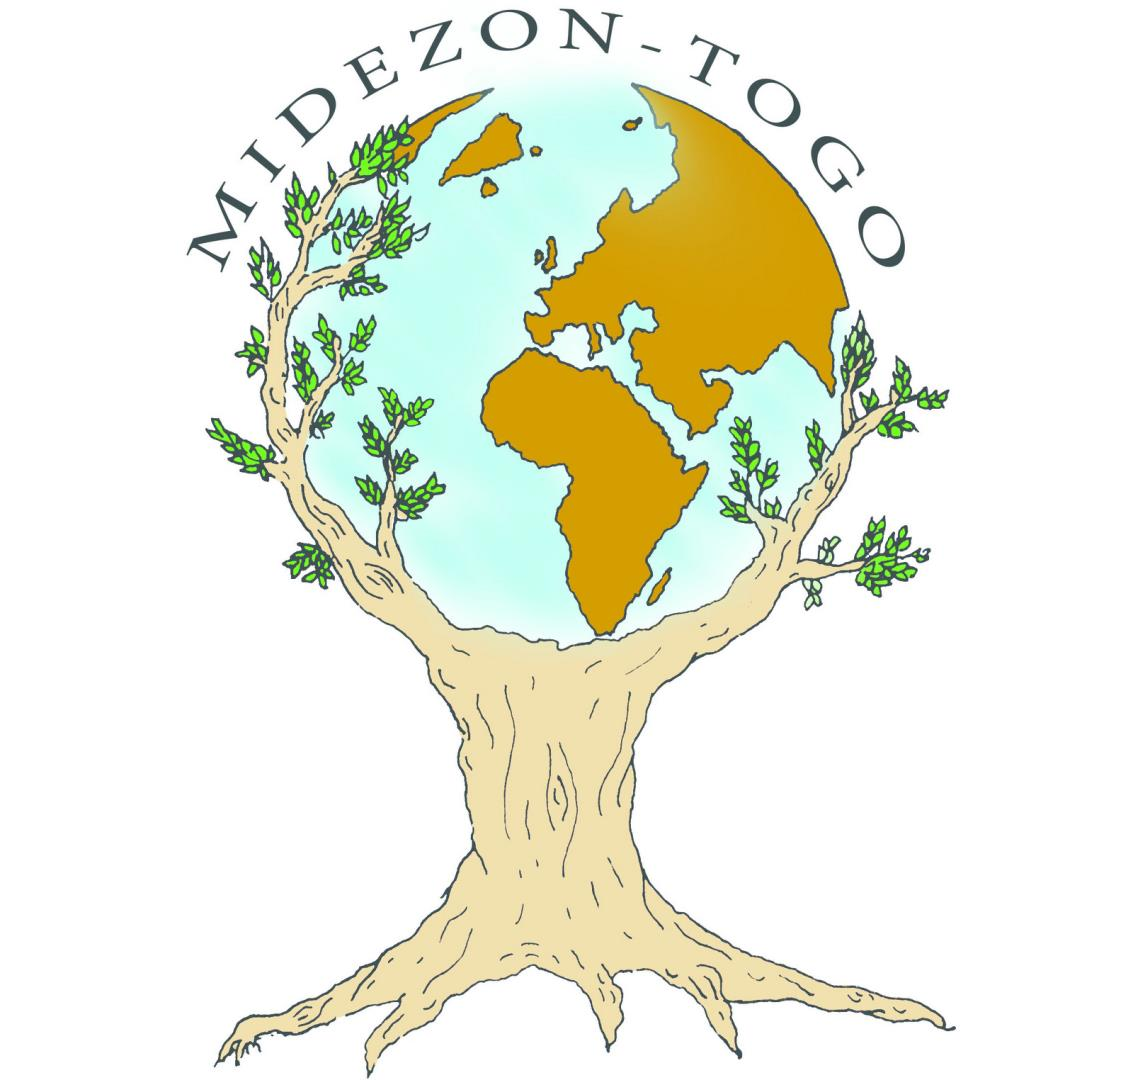 Association Midezon-Togo